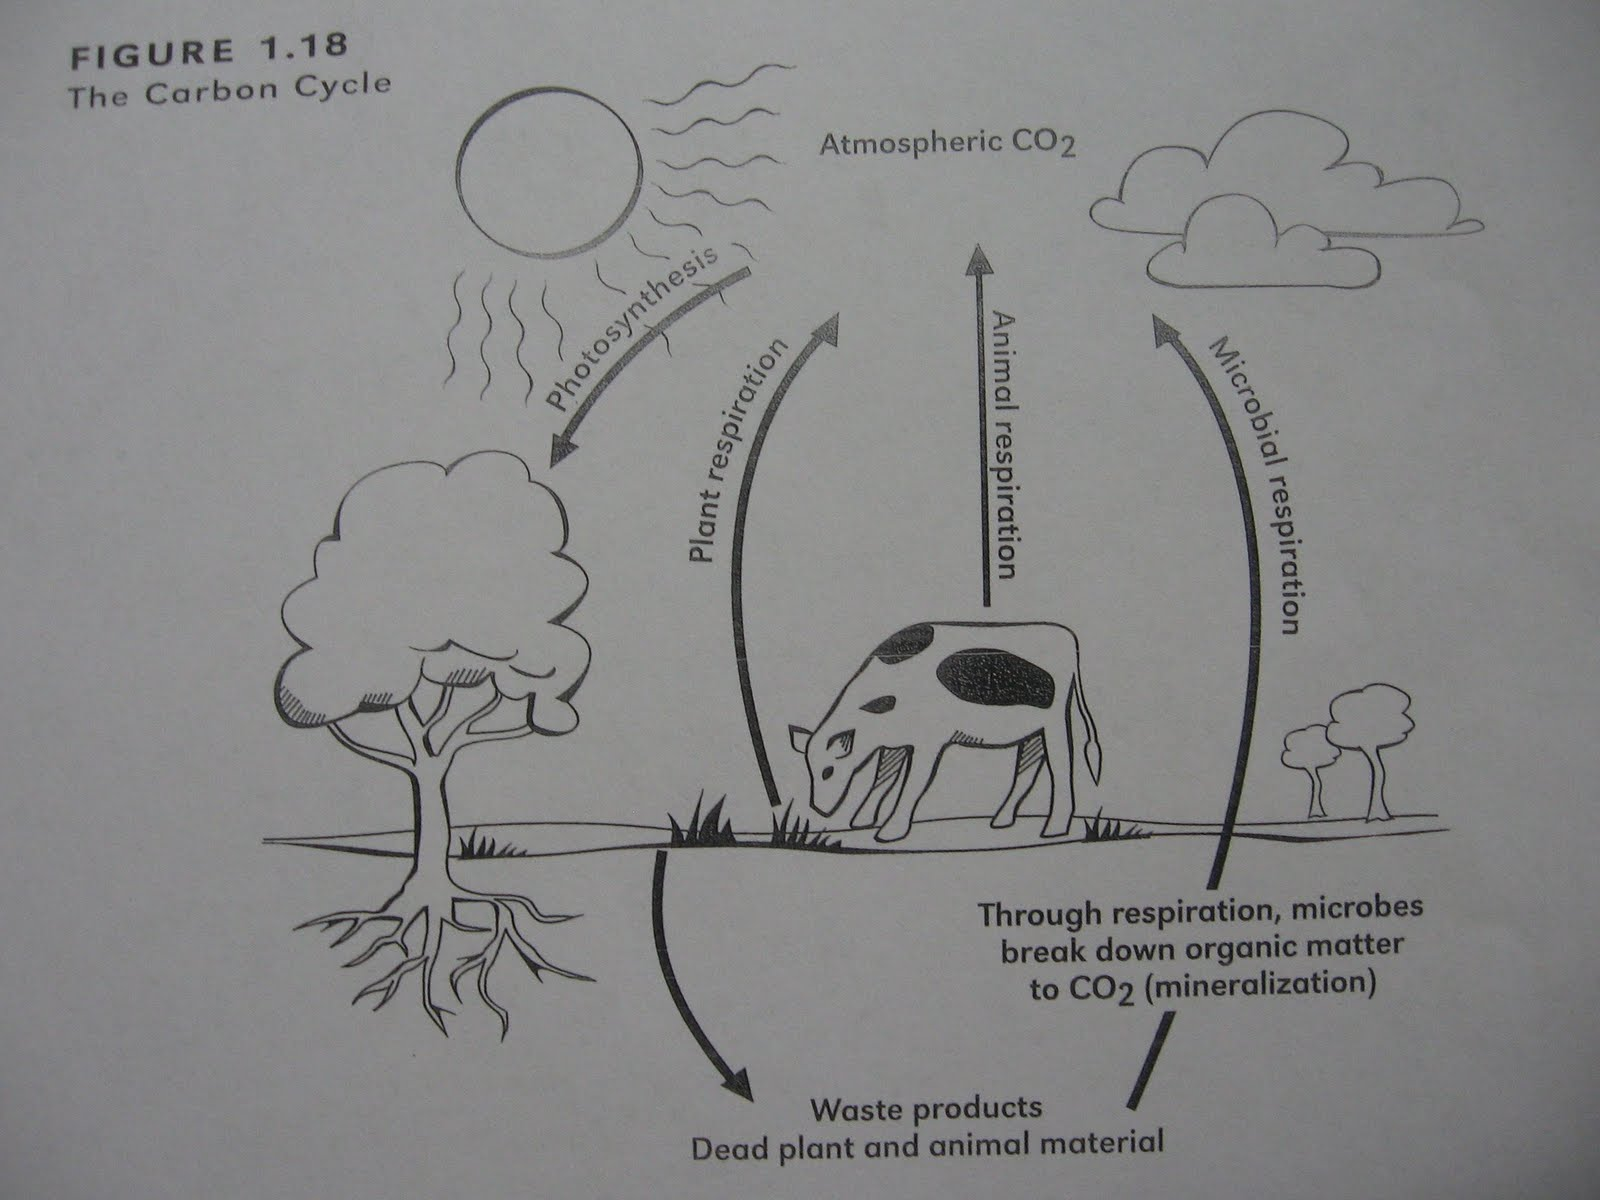 hight resolution of for homework some people need to redo some of their answers we read about the nitrogen cycle and looked at a diagram that shows how nitrogen fixing